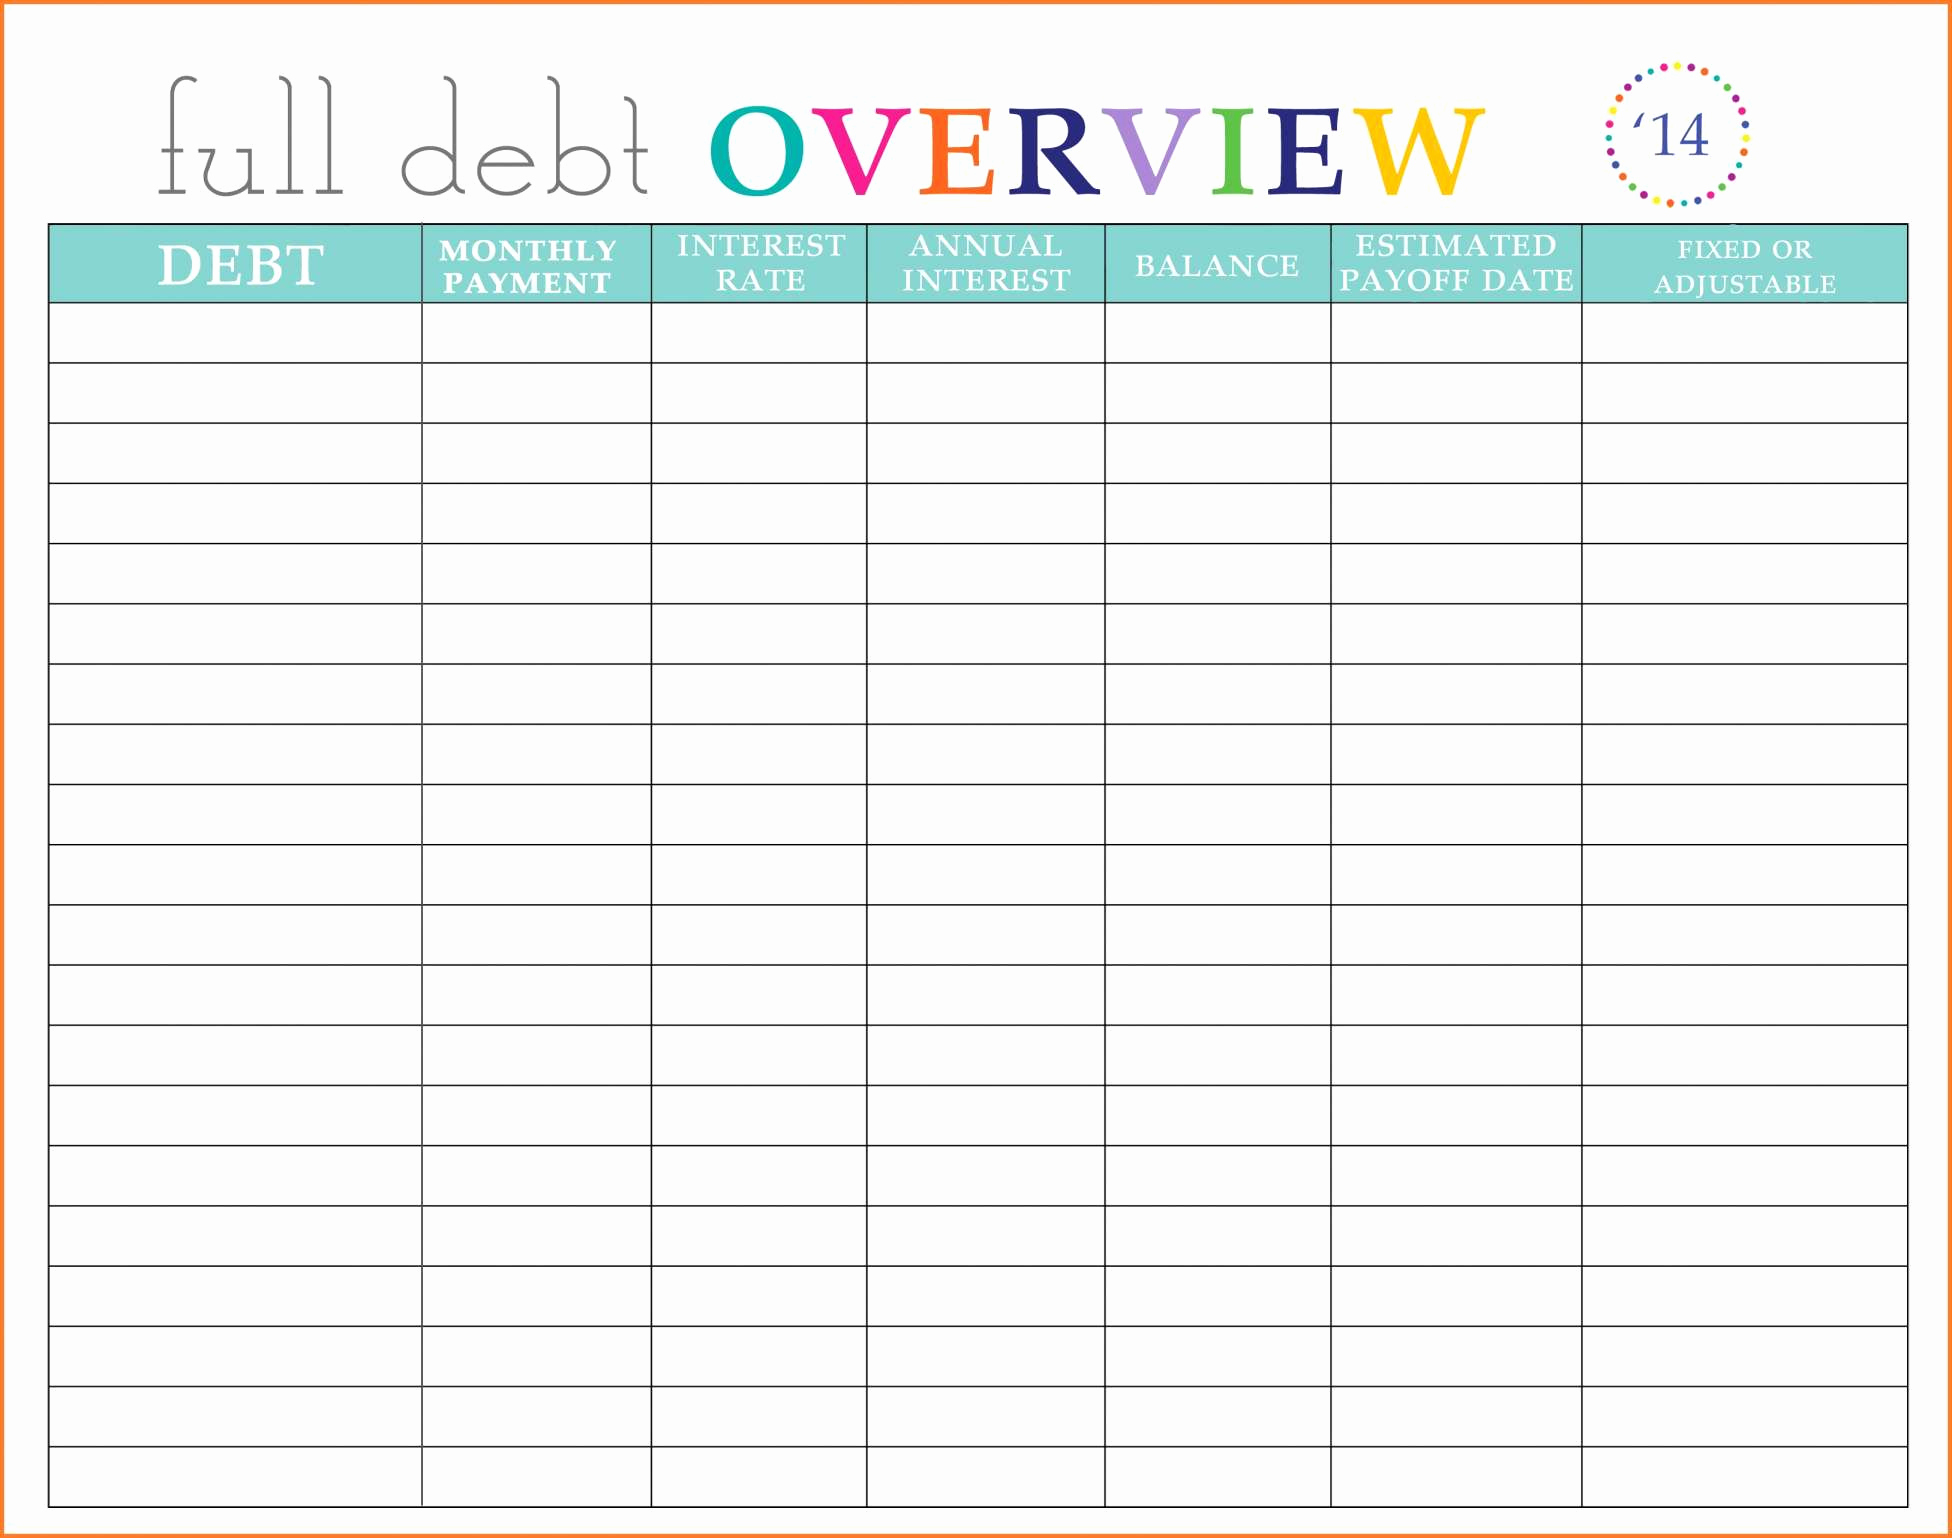 Lularoe Inventory Checklist Best Of Small Business